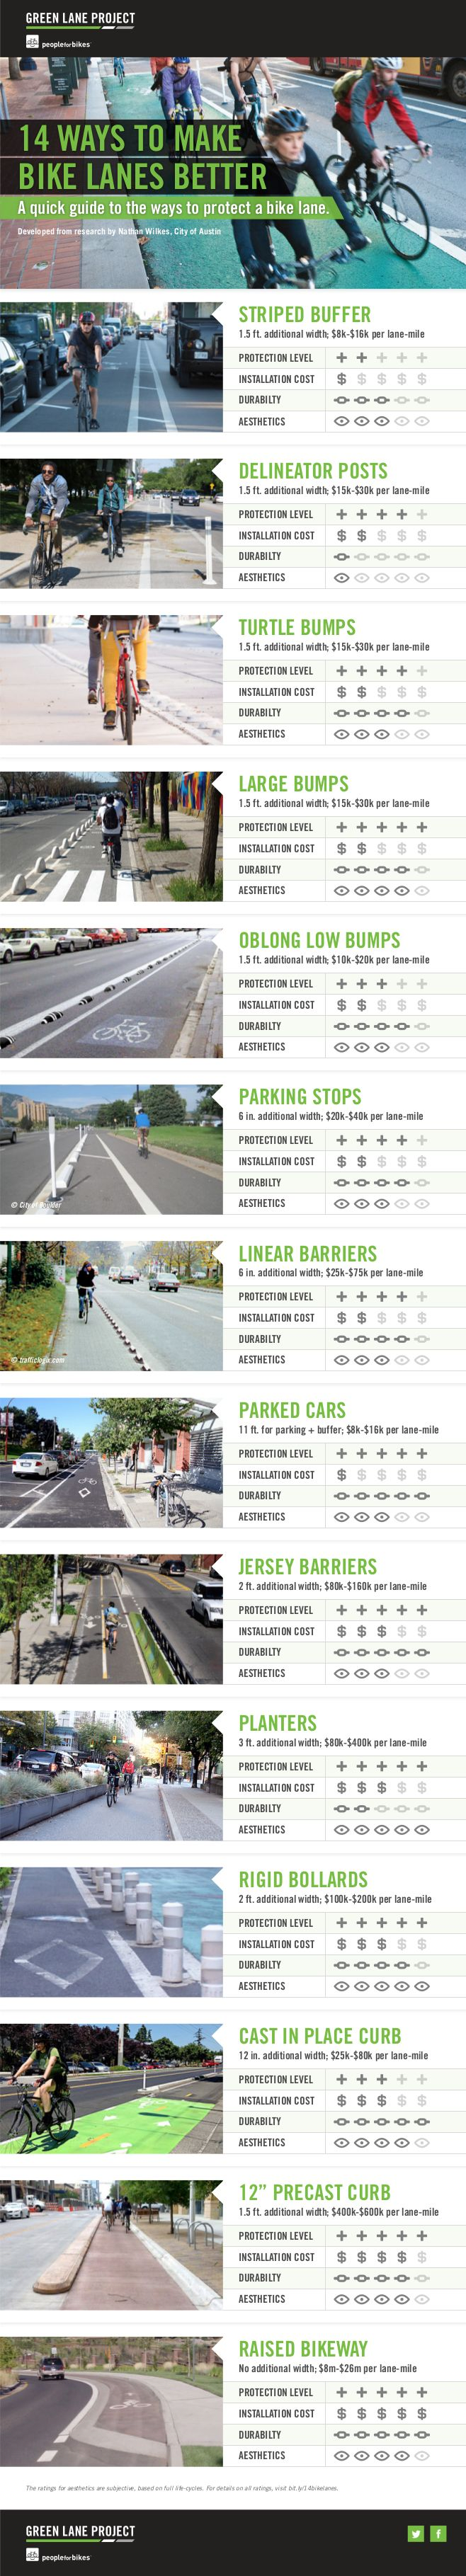 Great guide on how to improve bike lanes